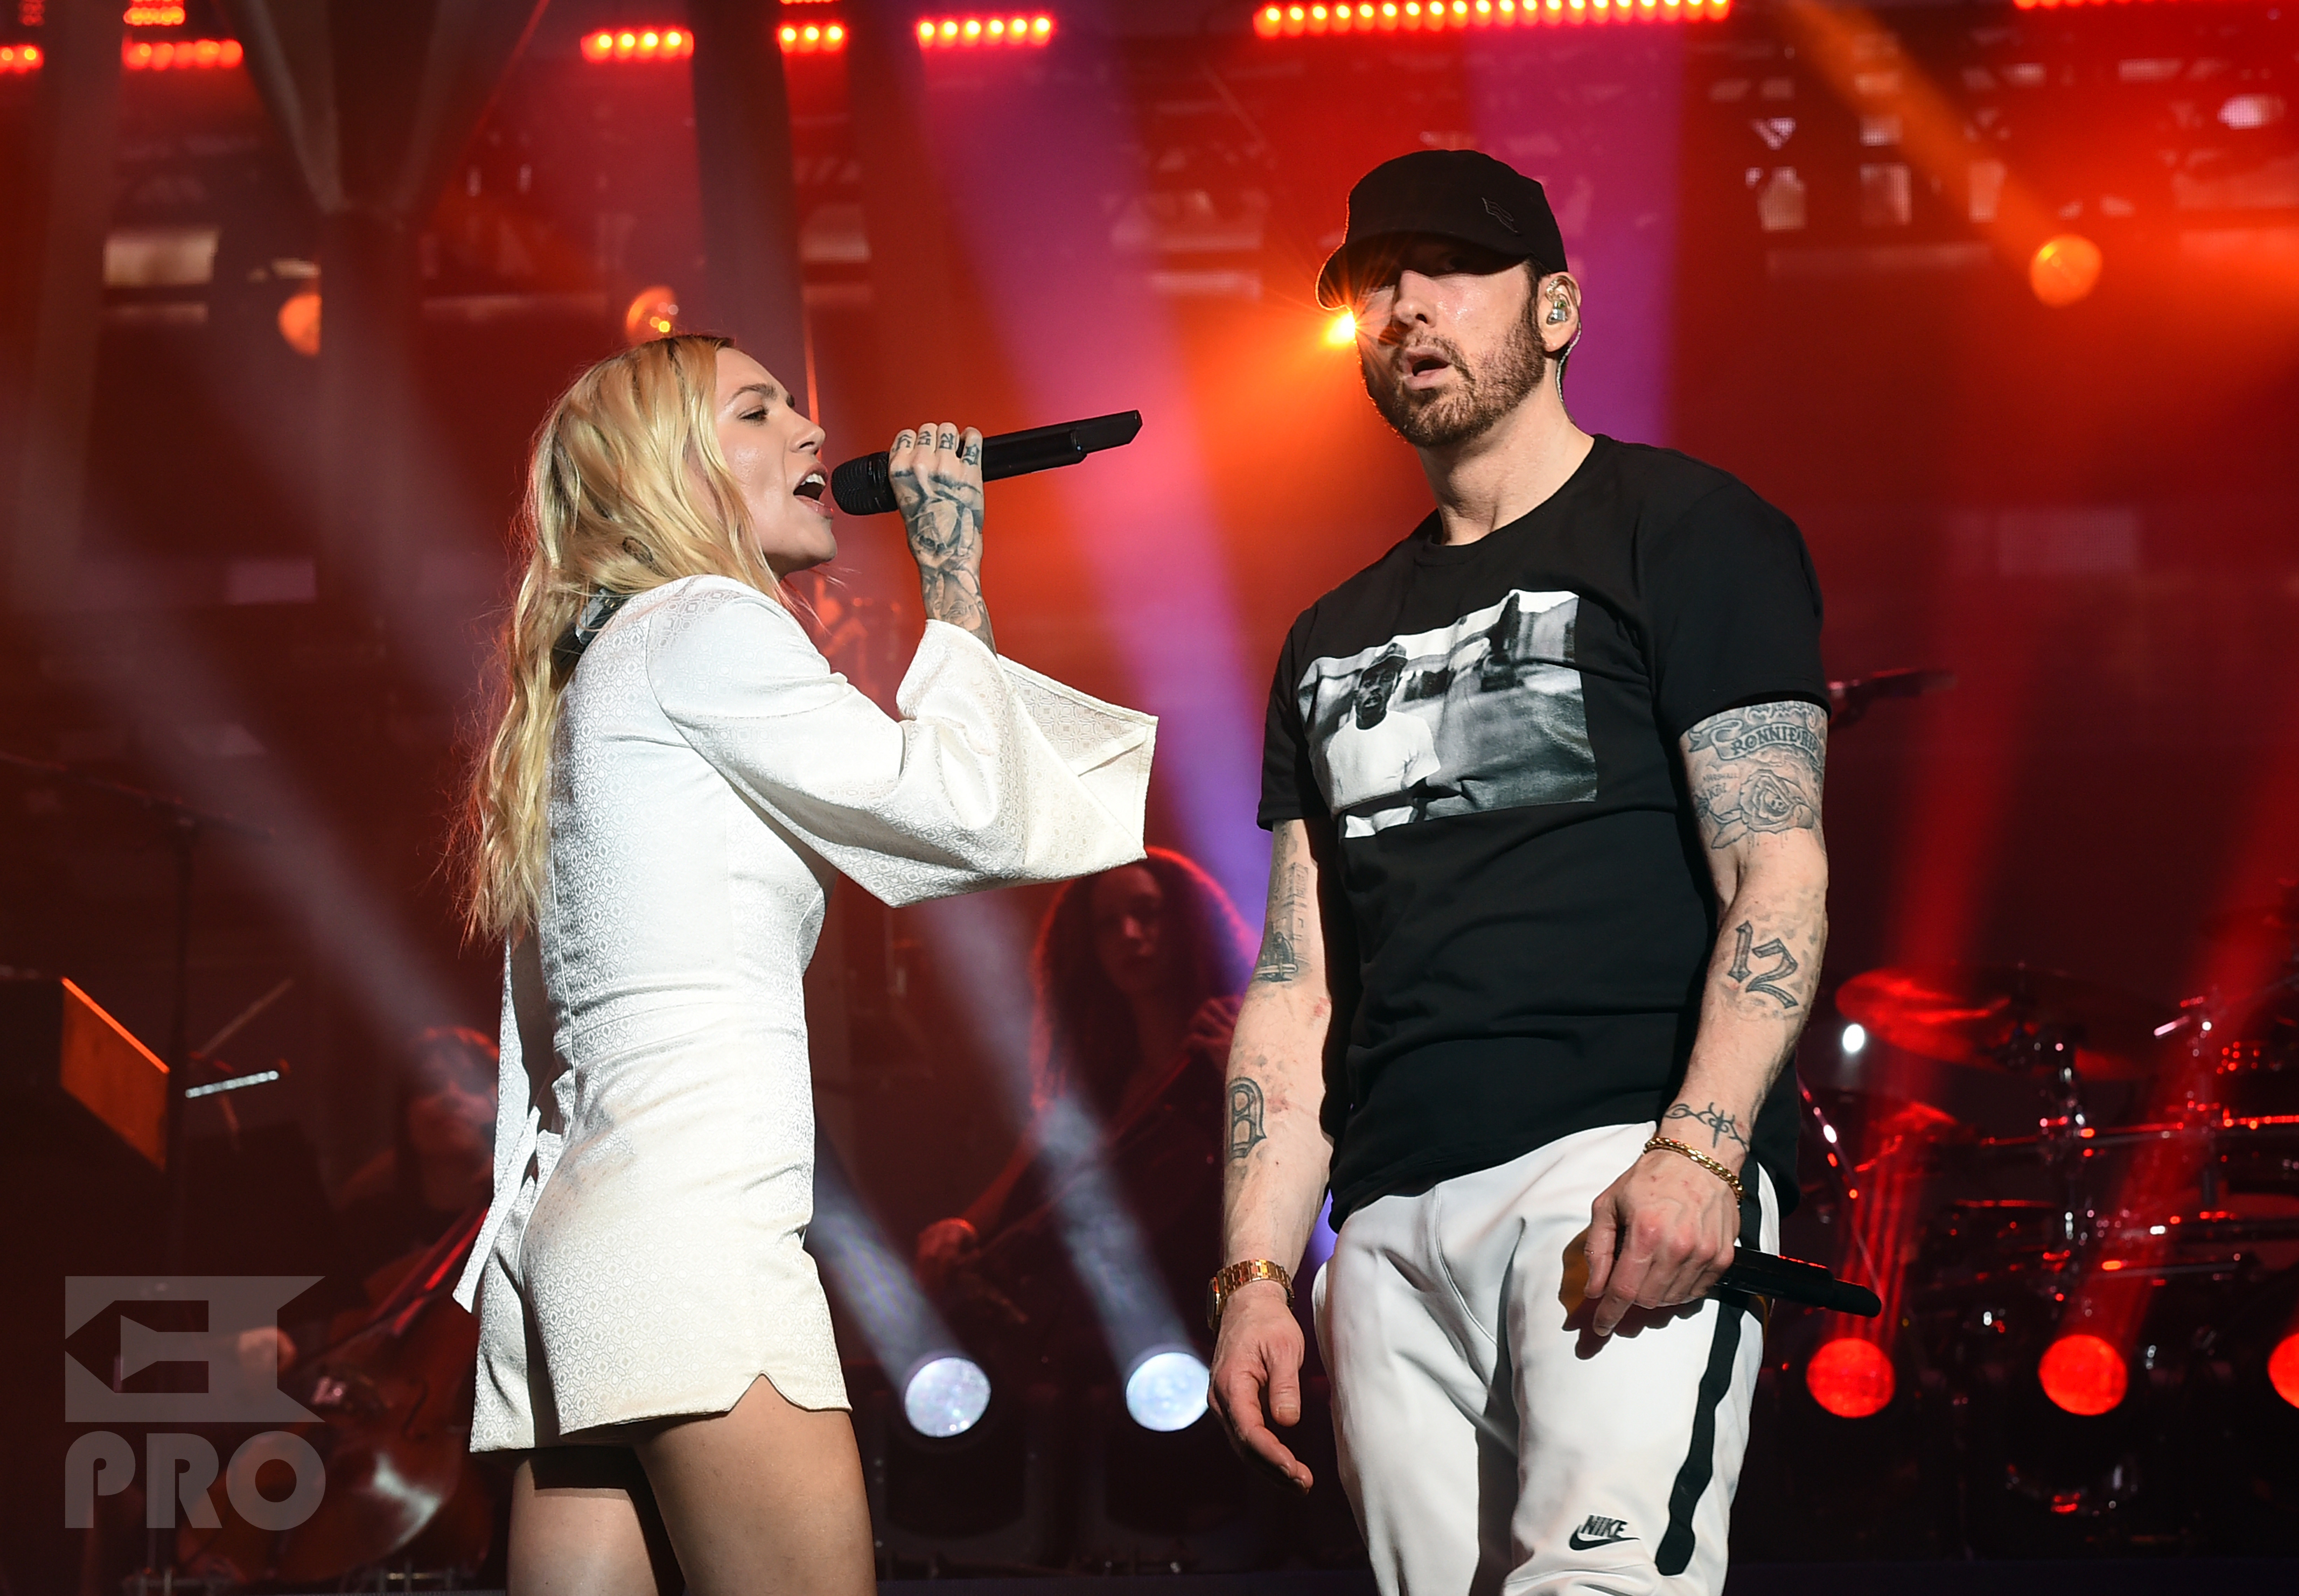 INDIO, CA - APRIL 15: Skylar Grey (L) and Eminem perform onstage during the 2018 Coachella Valley Music and Arts Festival Weekend 1 at the Empire Polo Field on April 15, 2018 in Indio, California. (Photo by Kevin Winter/Getty Images for Coachella)